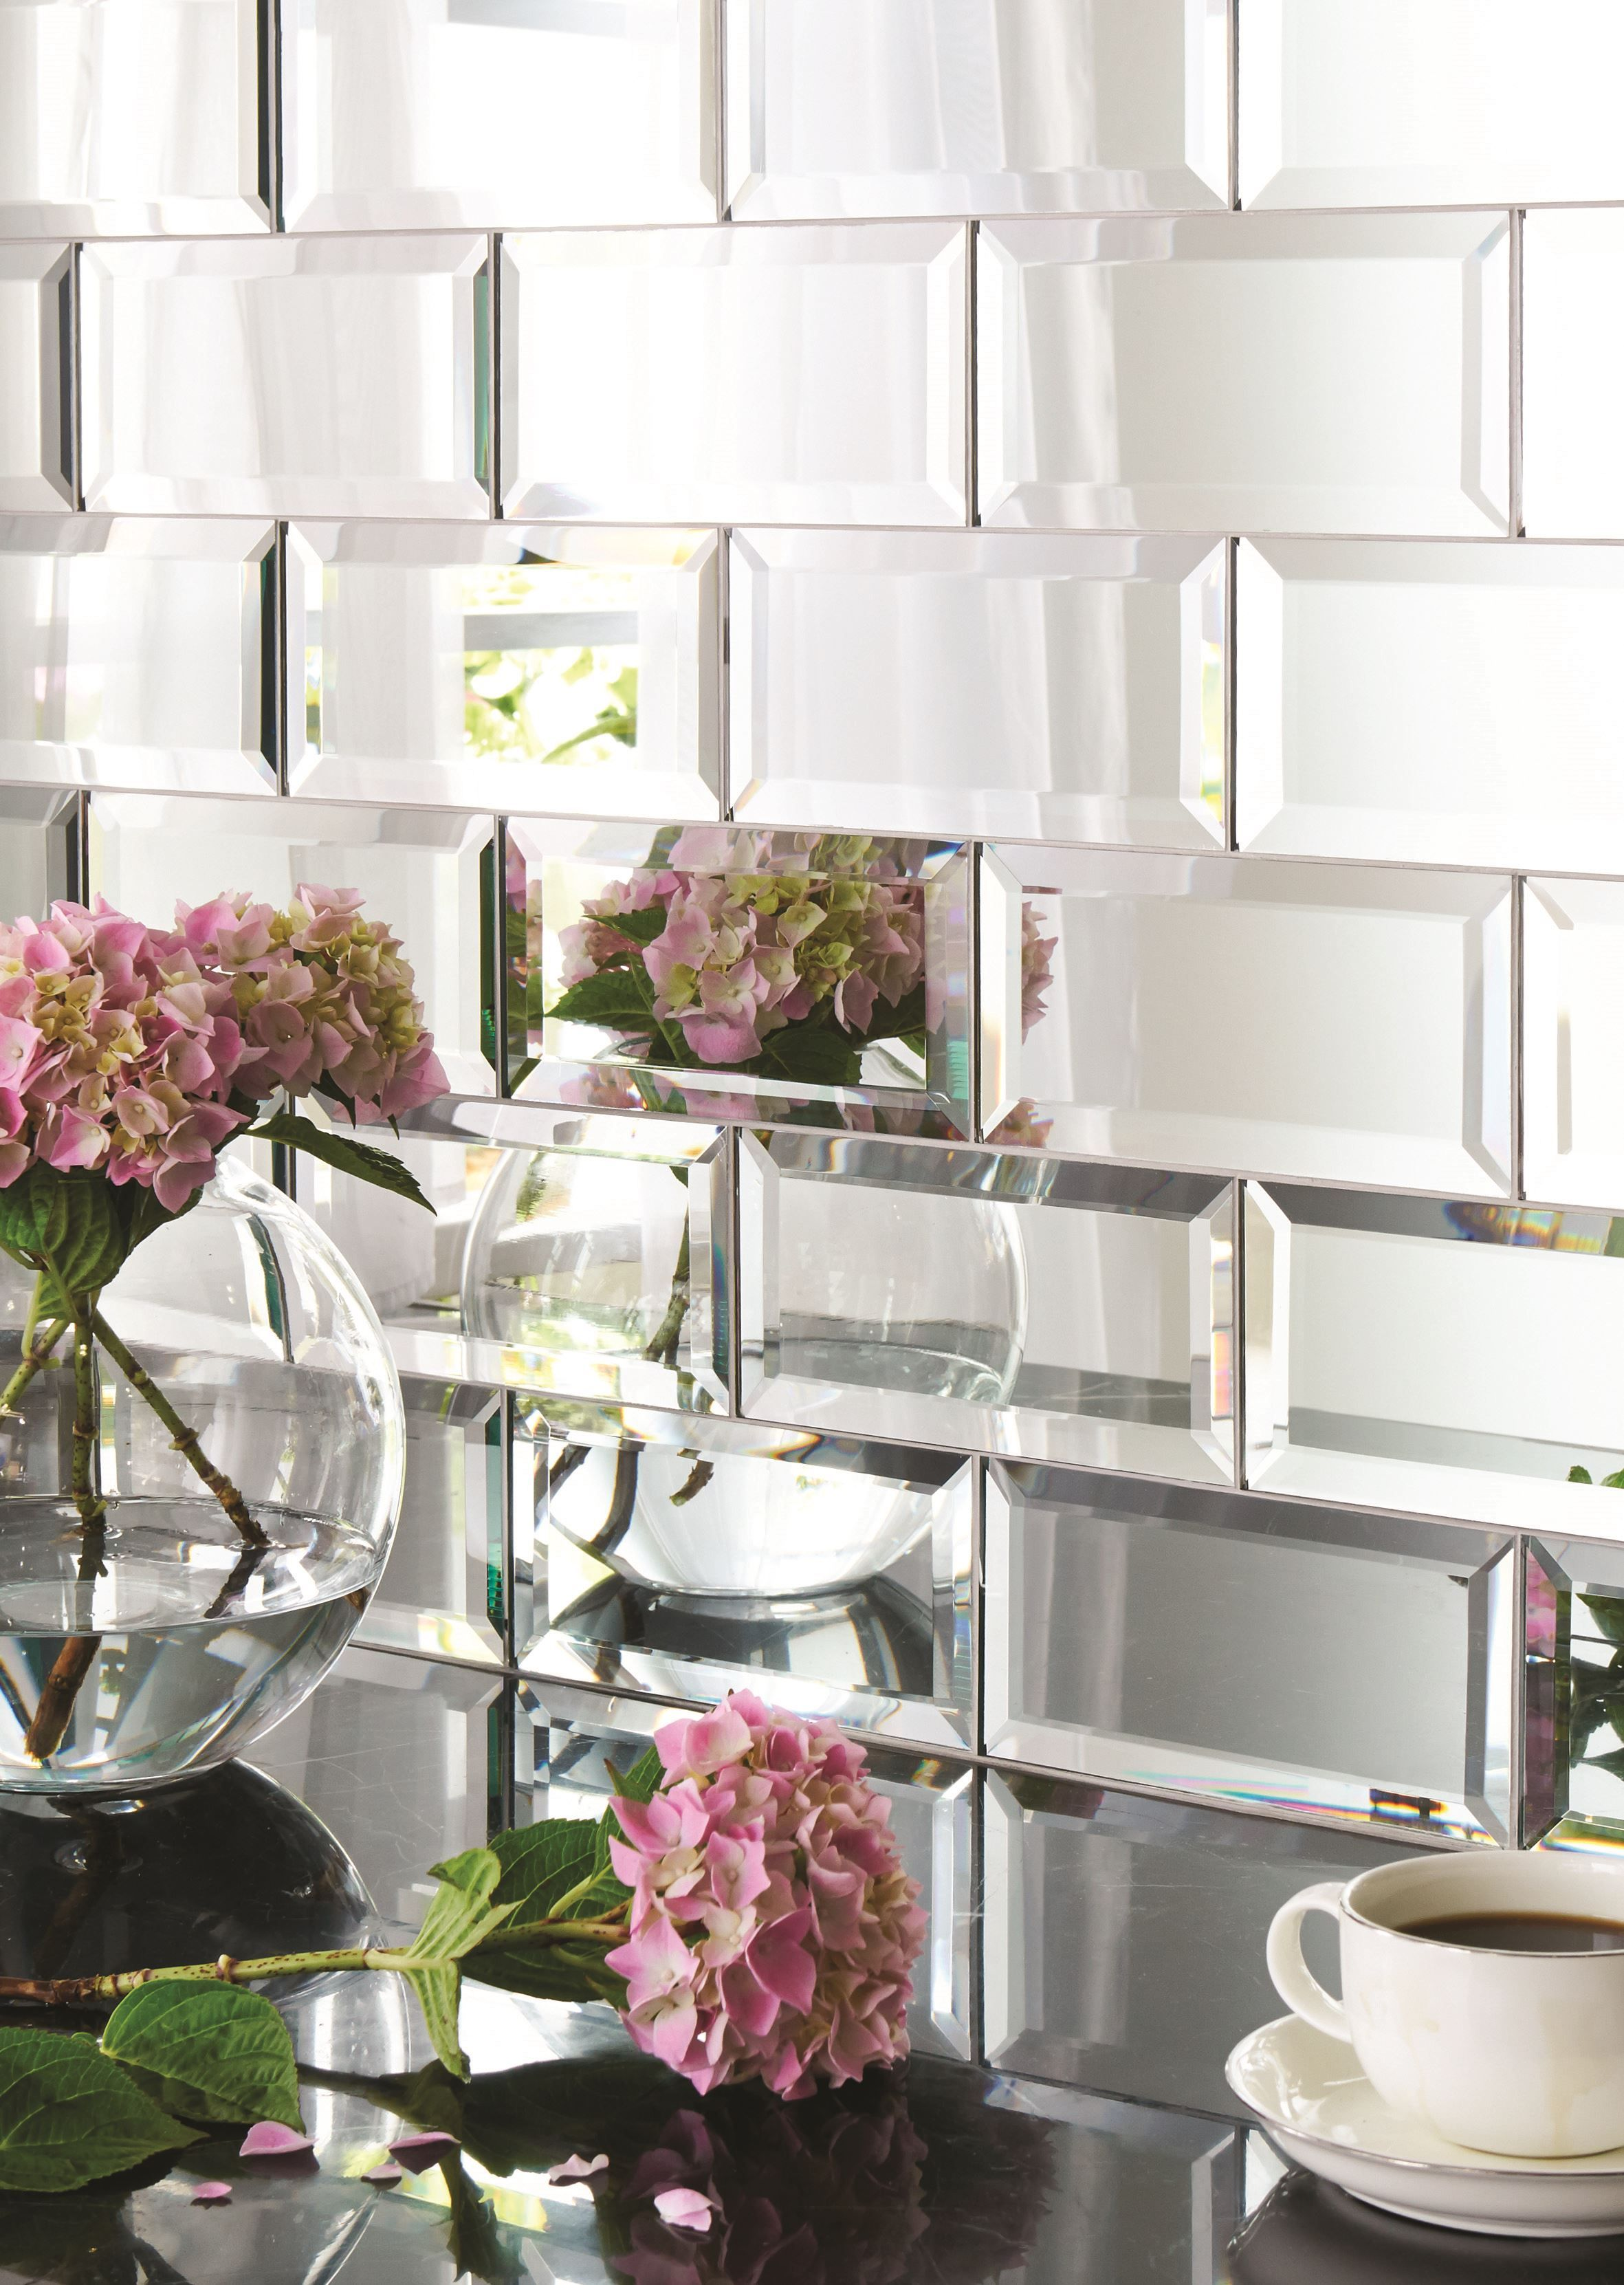 Mirror Tile Backsplash Kitchen Hexagonal Silver Mirrored Bevelled Wall Tiles House Kitchen